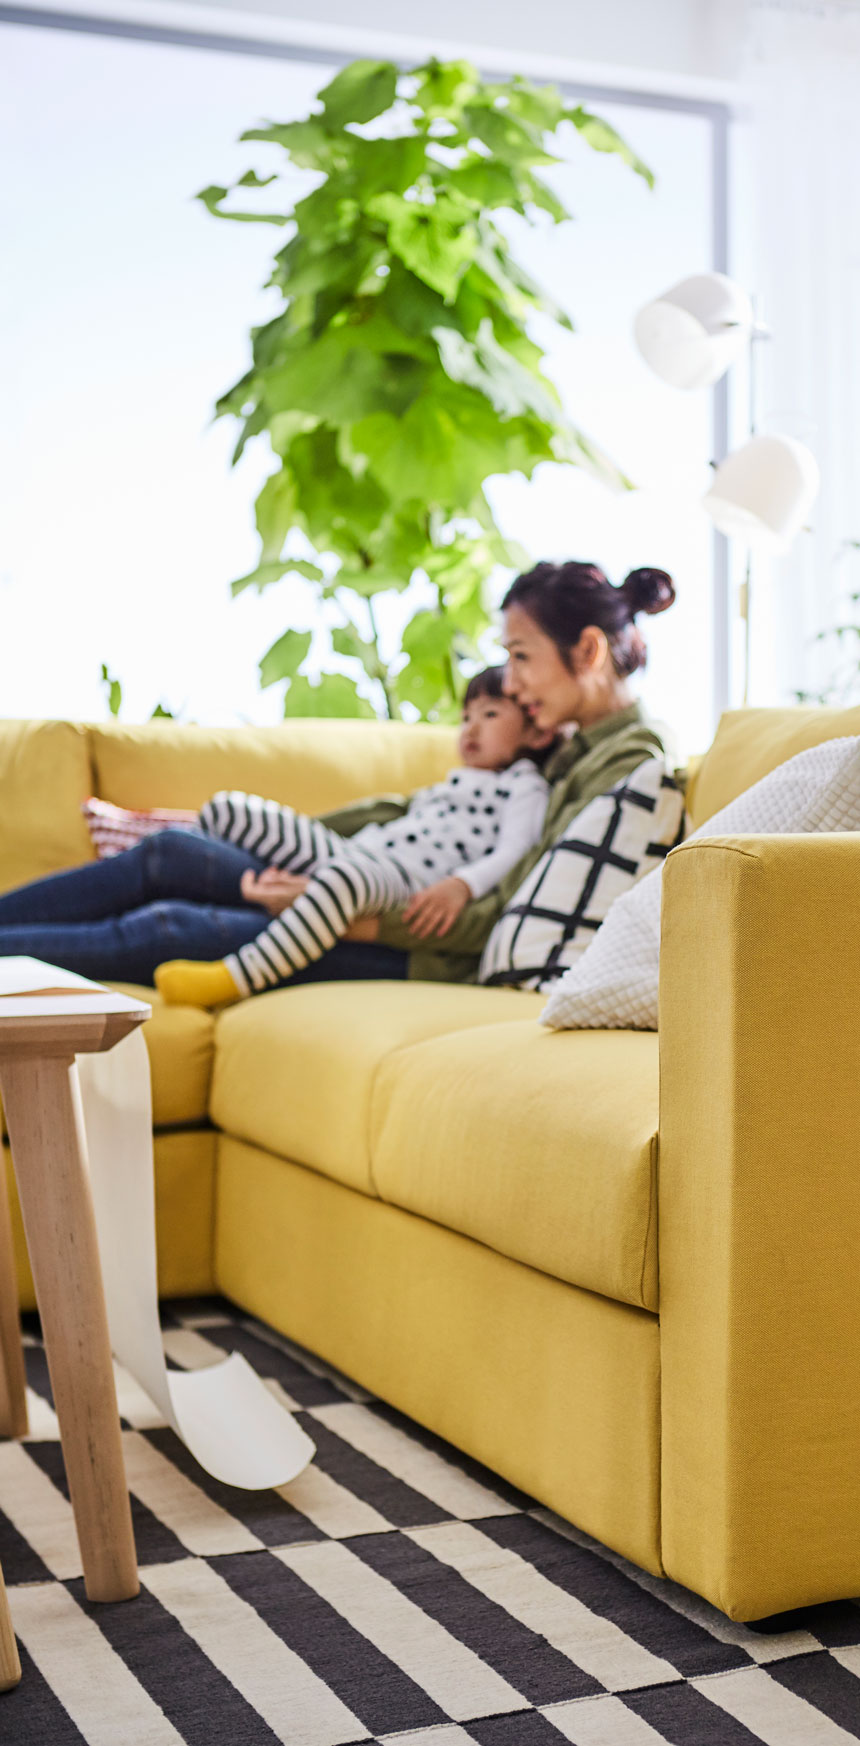 mother-and-kid-sitting-in-a-yellow-sofa